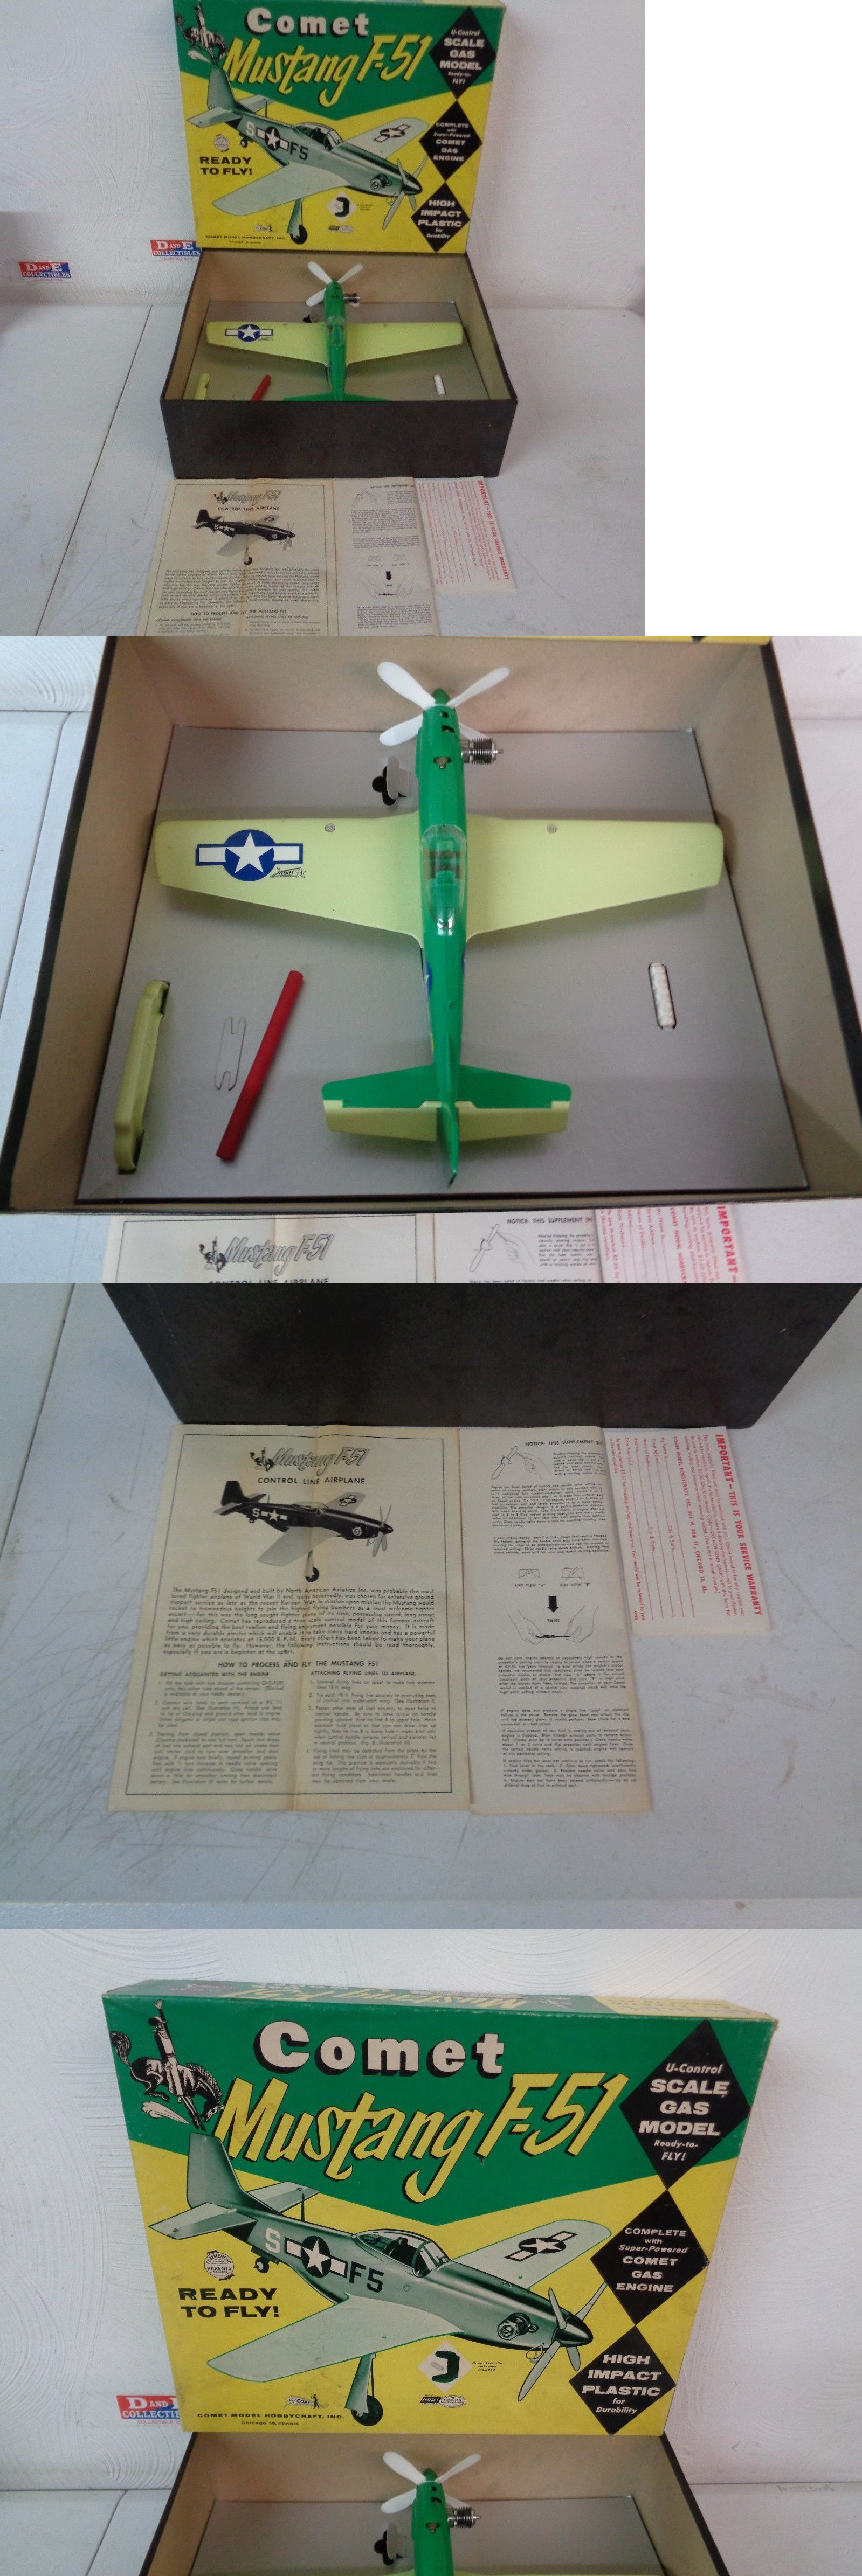 Other RC and Control Line 168248: Vintage Comet Mustang F-51